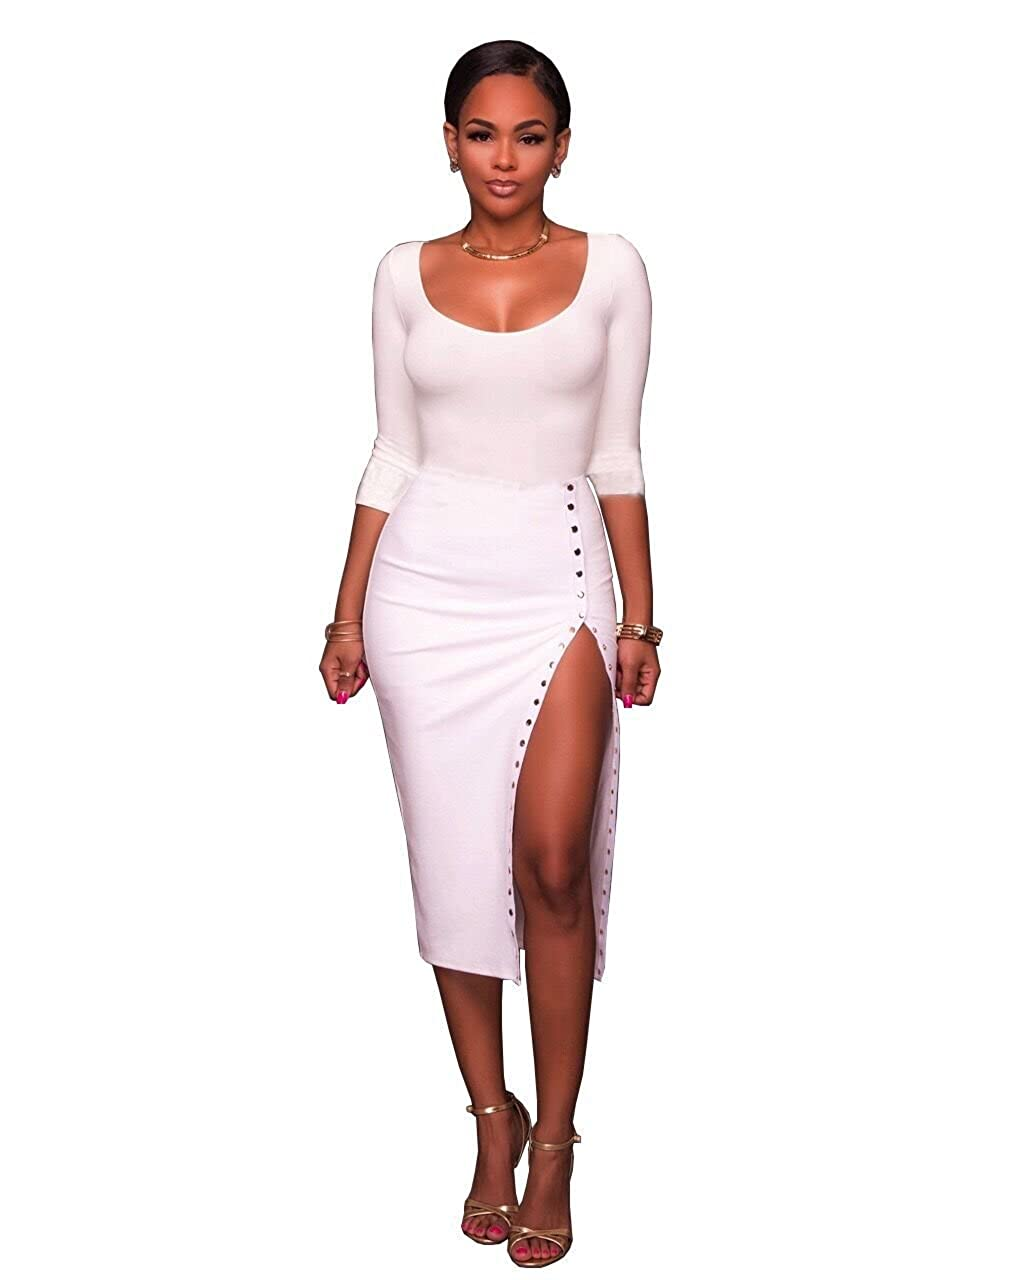 Women s 2 Piece Outfits Long Sleeve Scoop Neck Crop Top Midi Skirt Bodycon  Pencil Party Club Midi Dress at Amazon Women s Clothing store  53f22e389